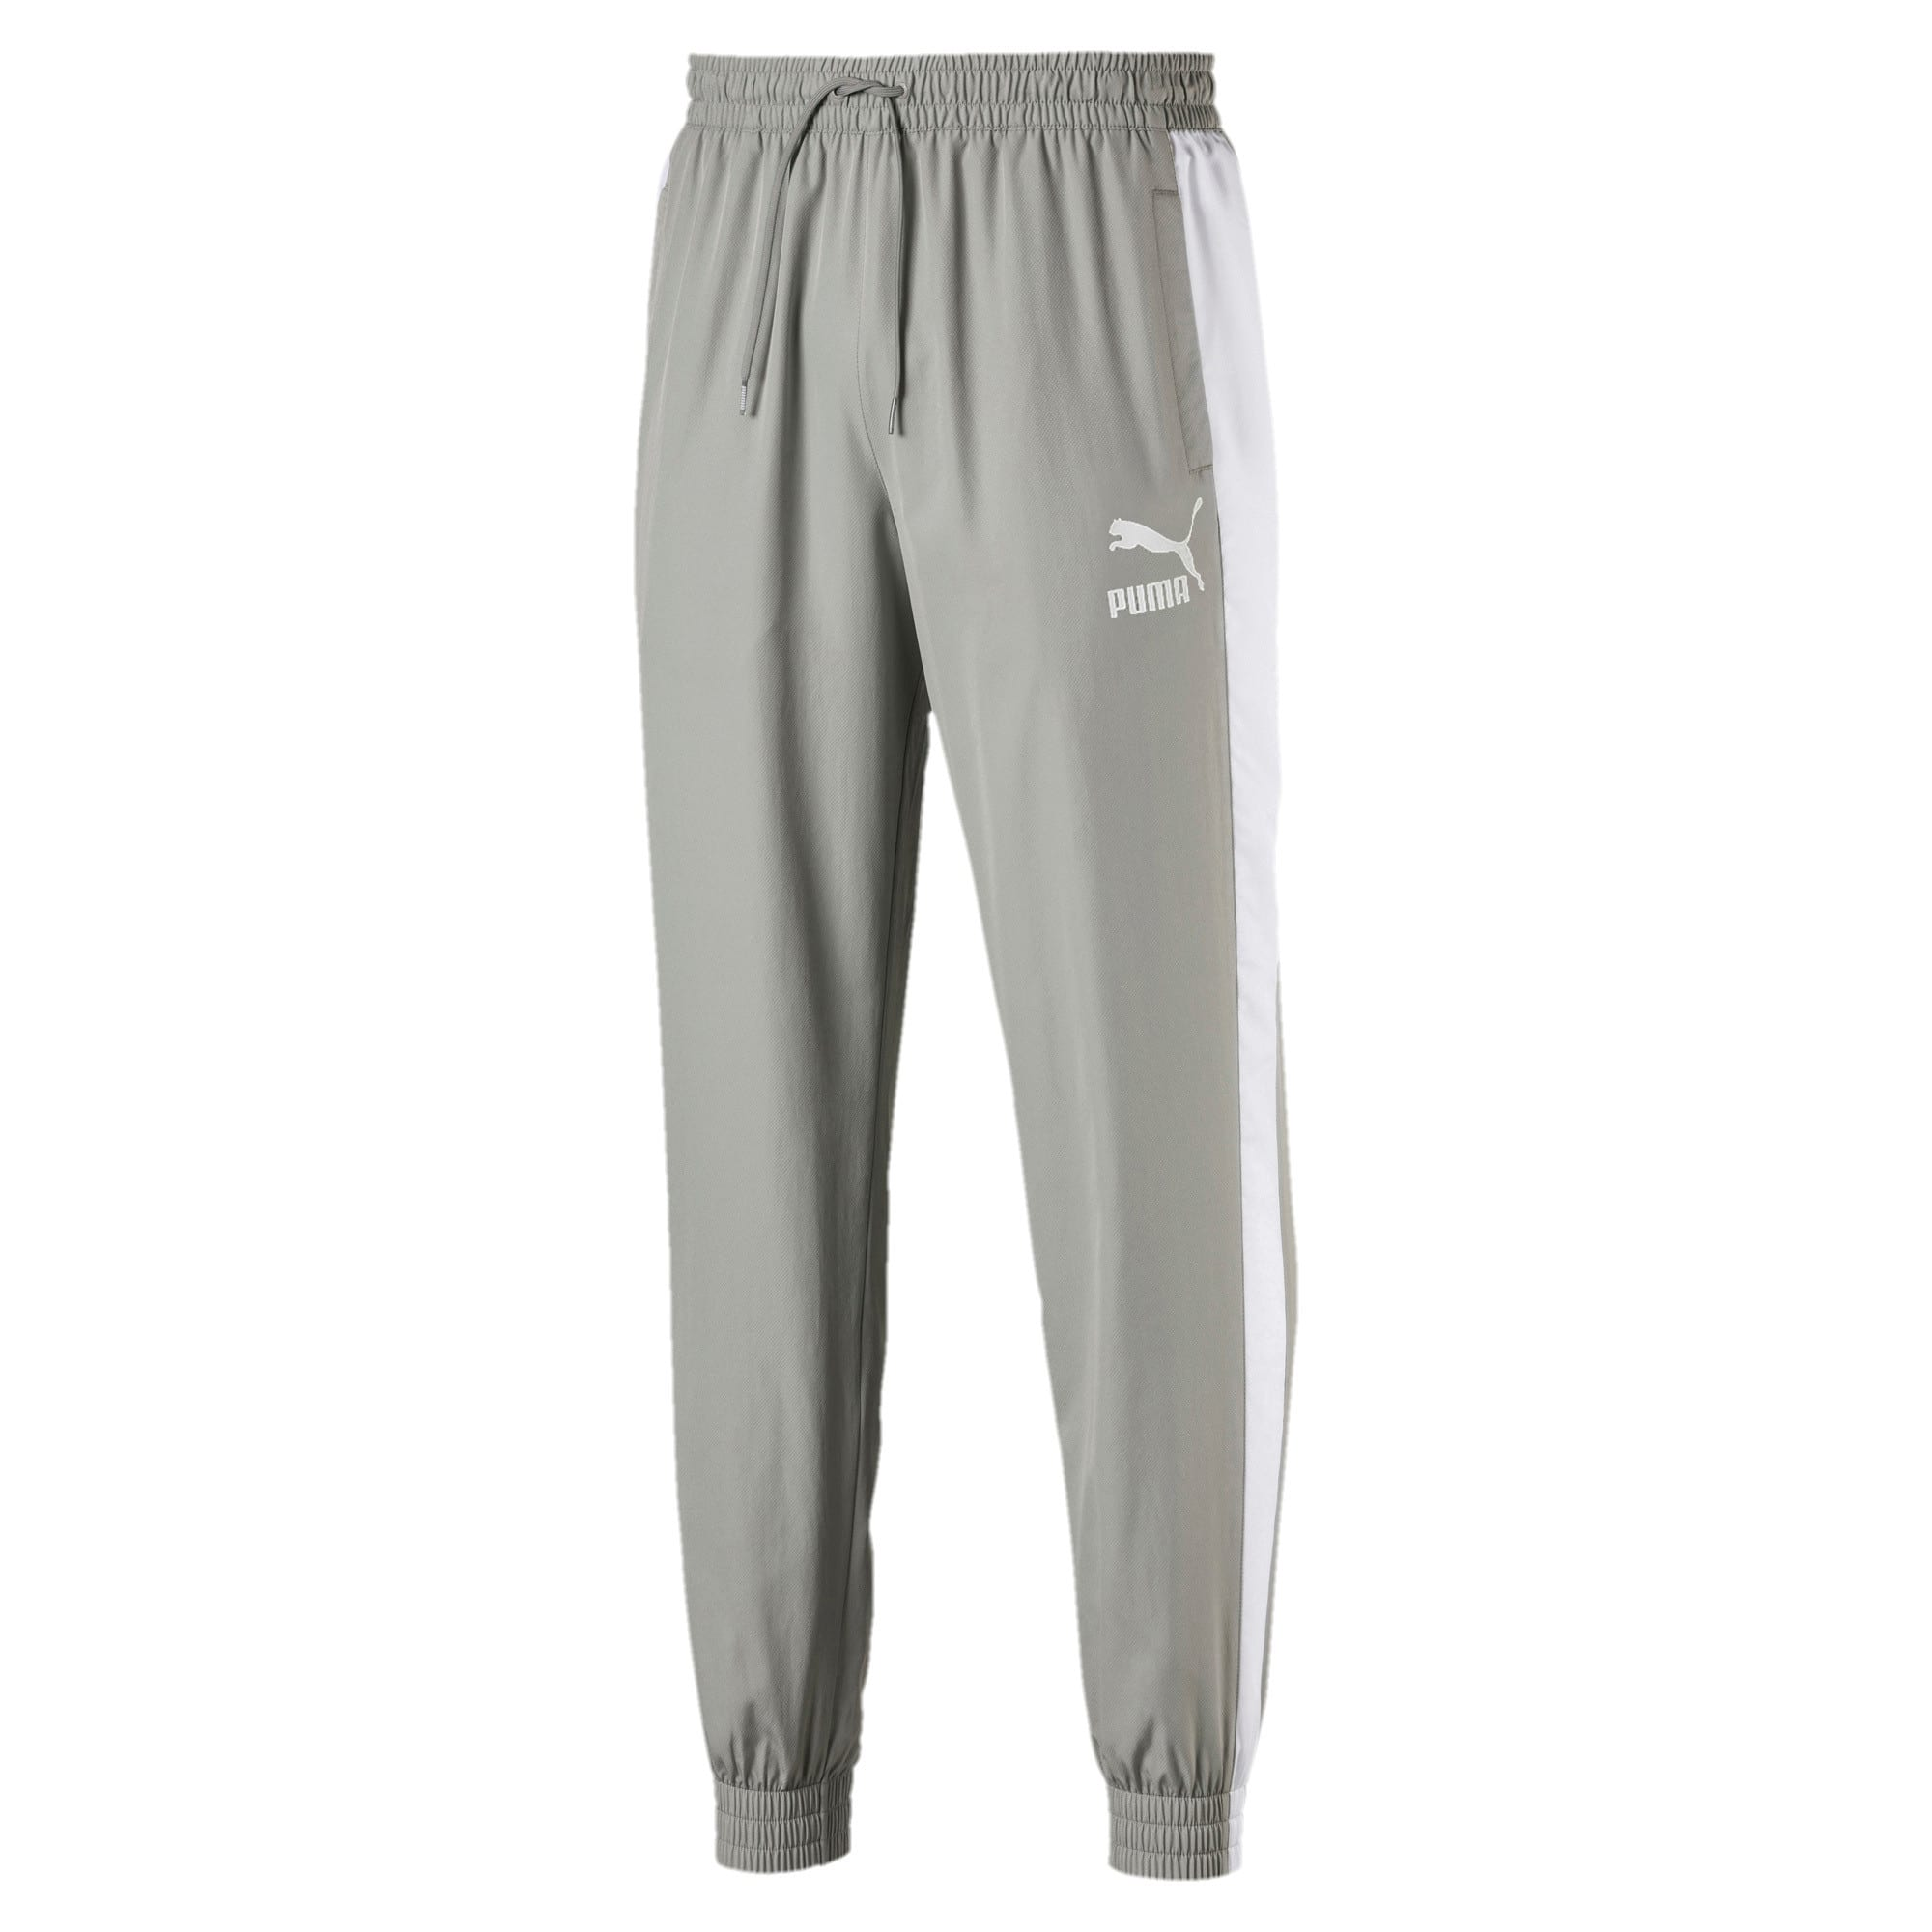 Thumbnail 1 of Iconic T7 Woven Men's Sweatpants, Limestone, medium-IND